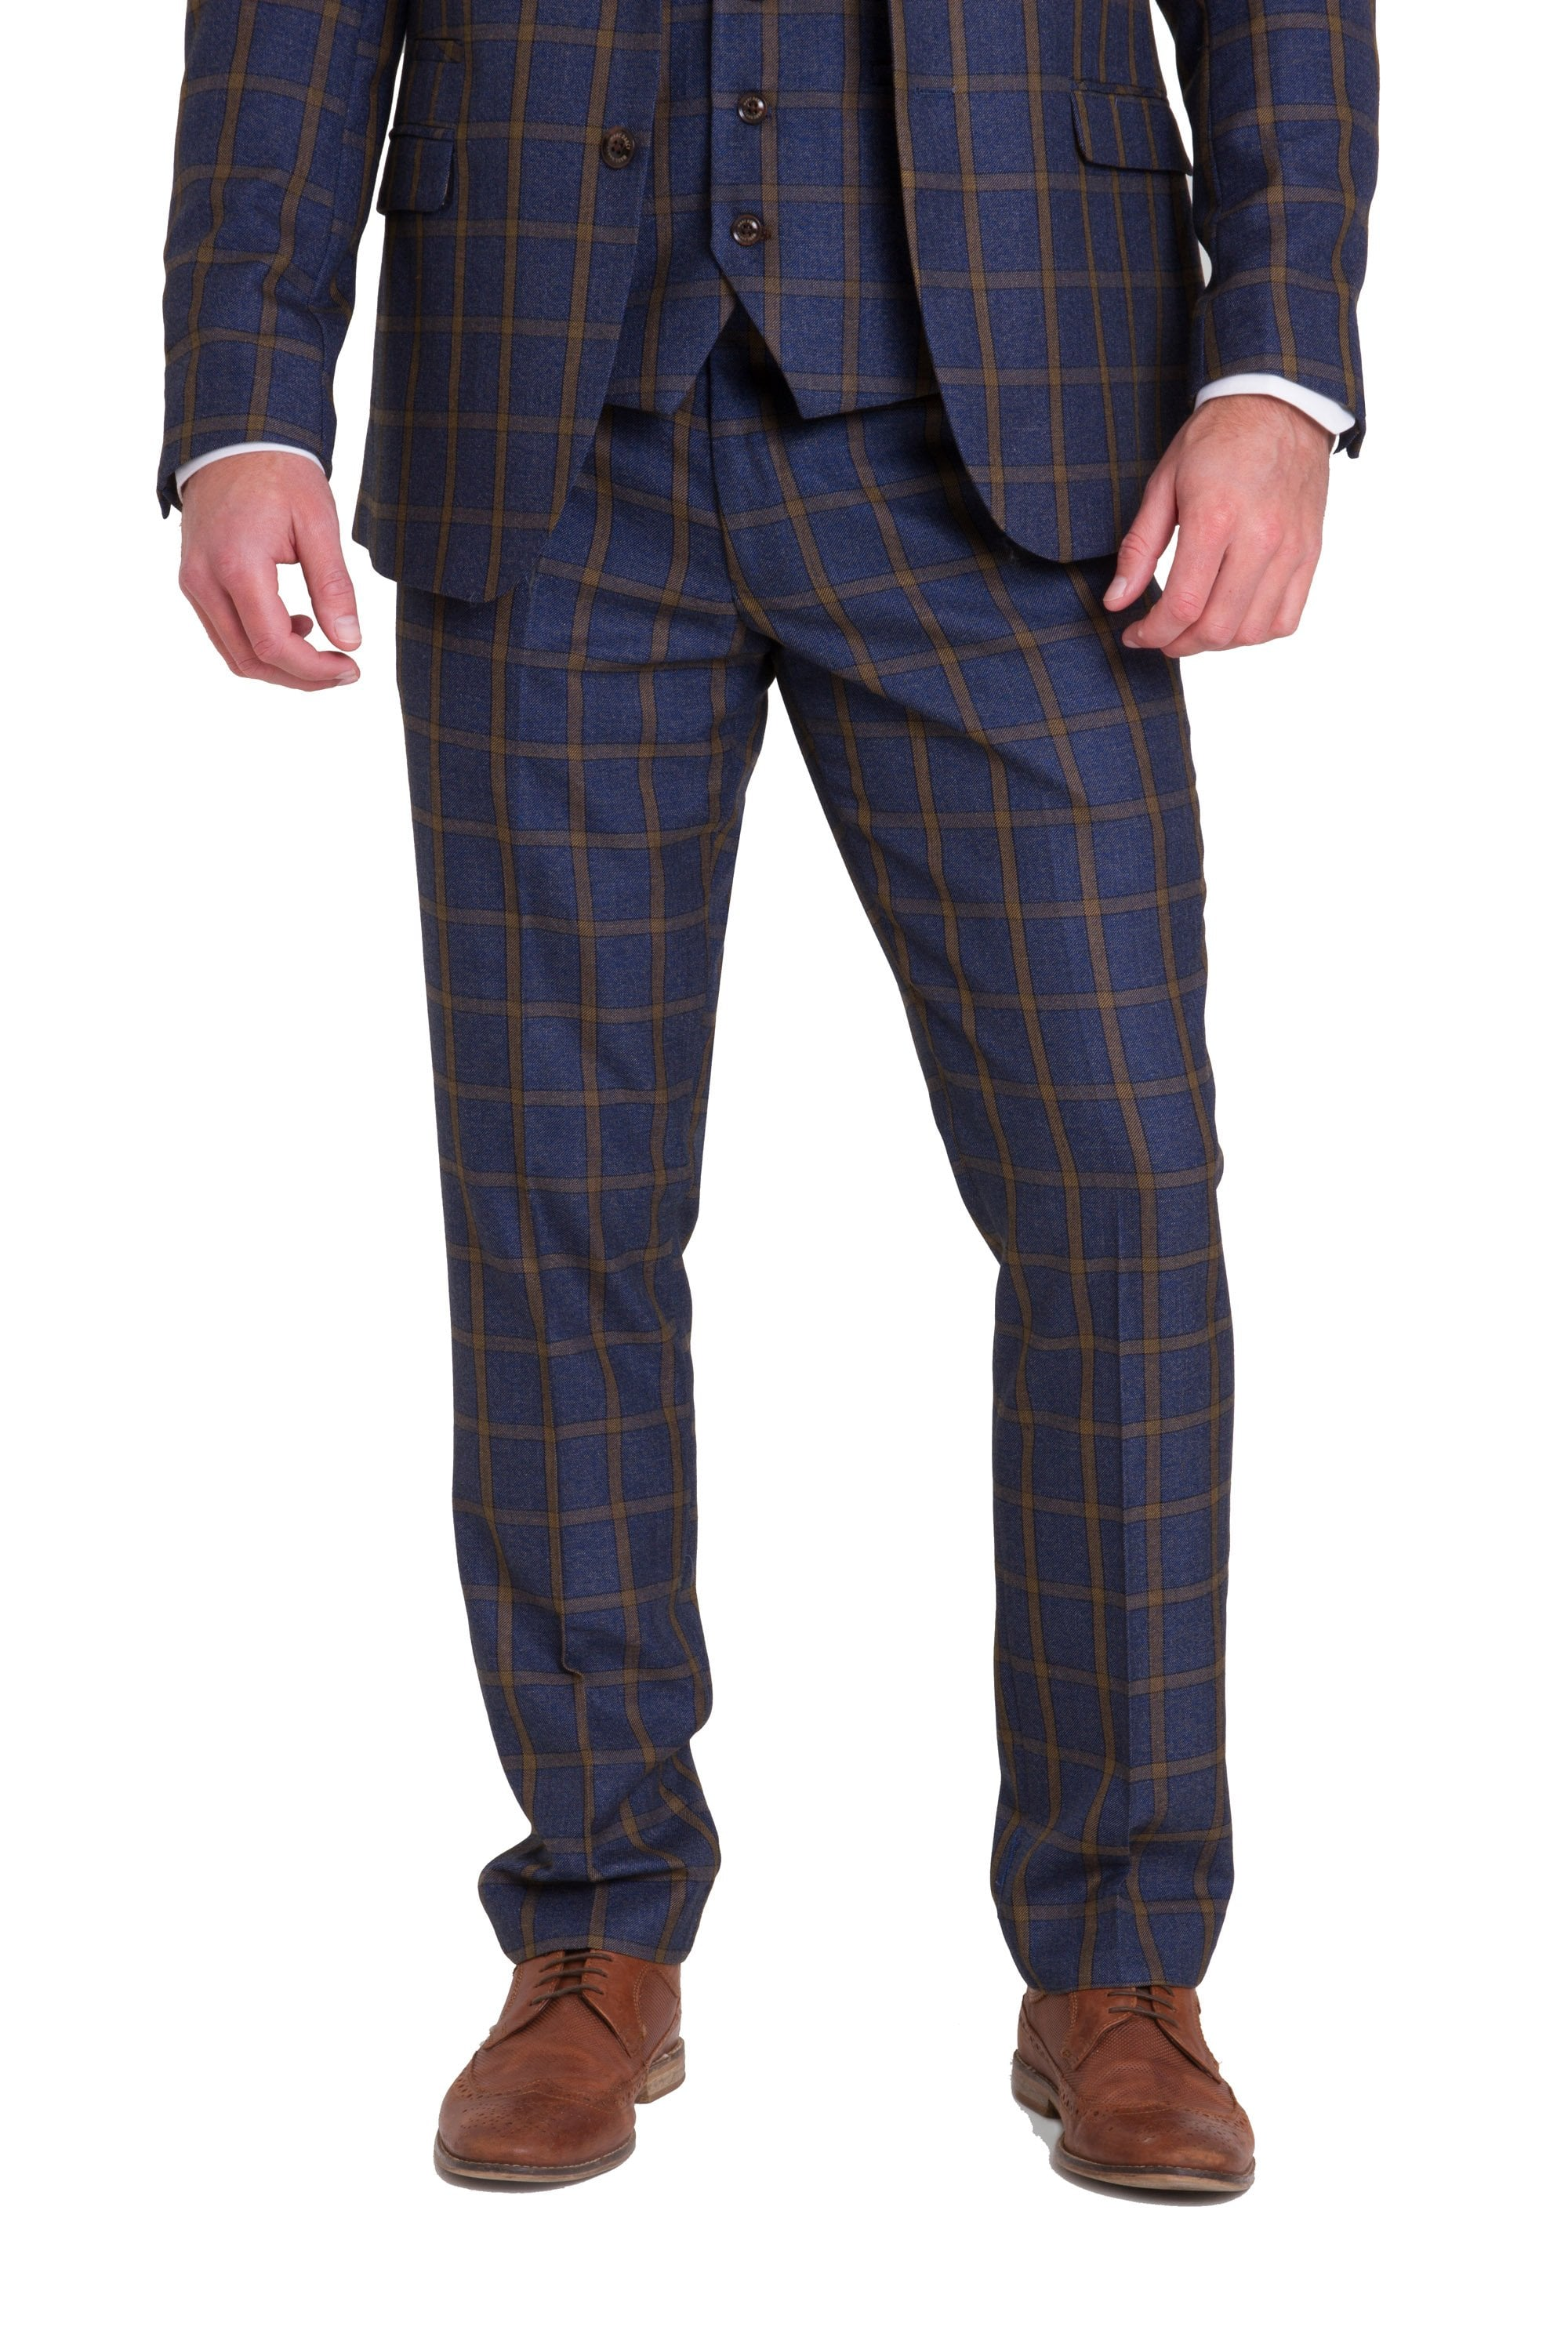 Marc Darcy Roman Tweed Trousers 363913f76007